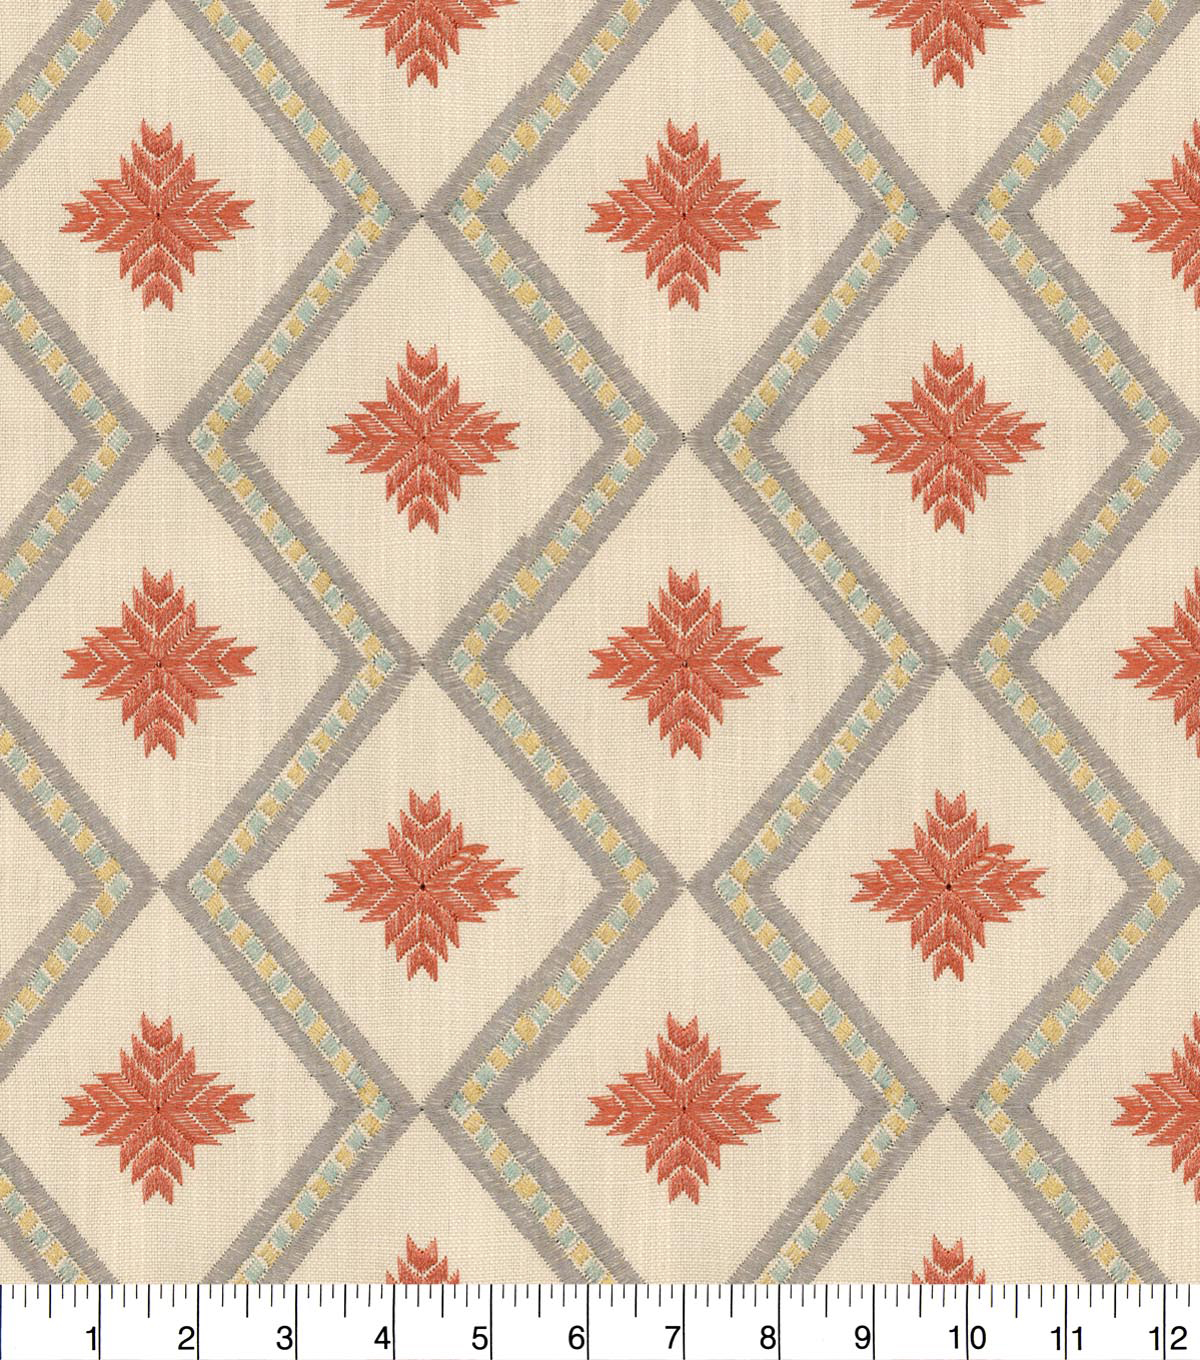 Genevieve Gorder Embroidered Upholstery Fabric 54''-Adobo Kyss